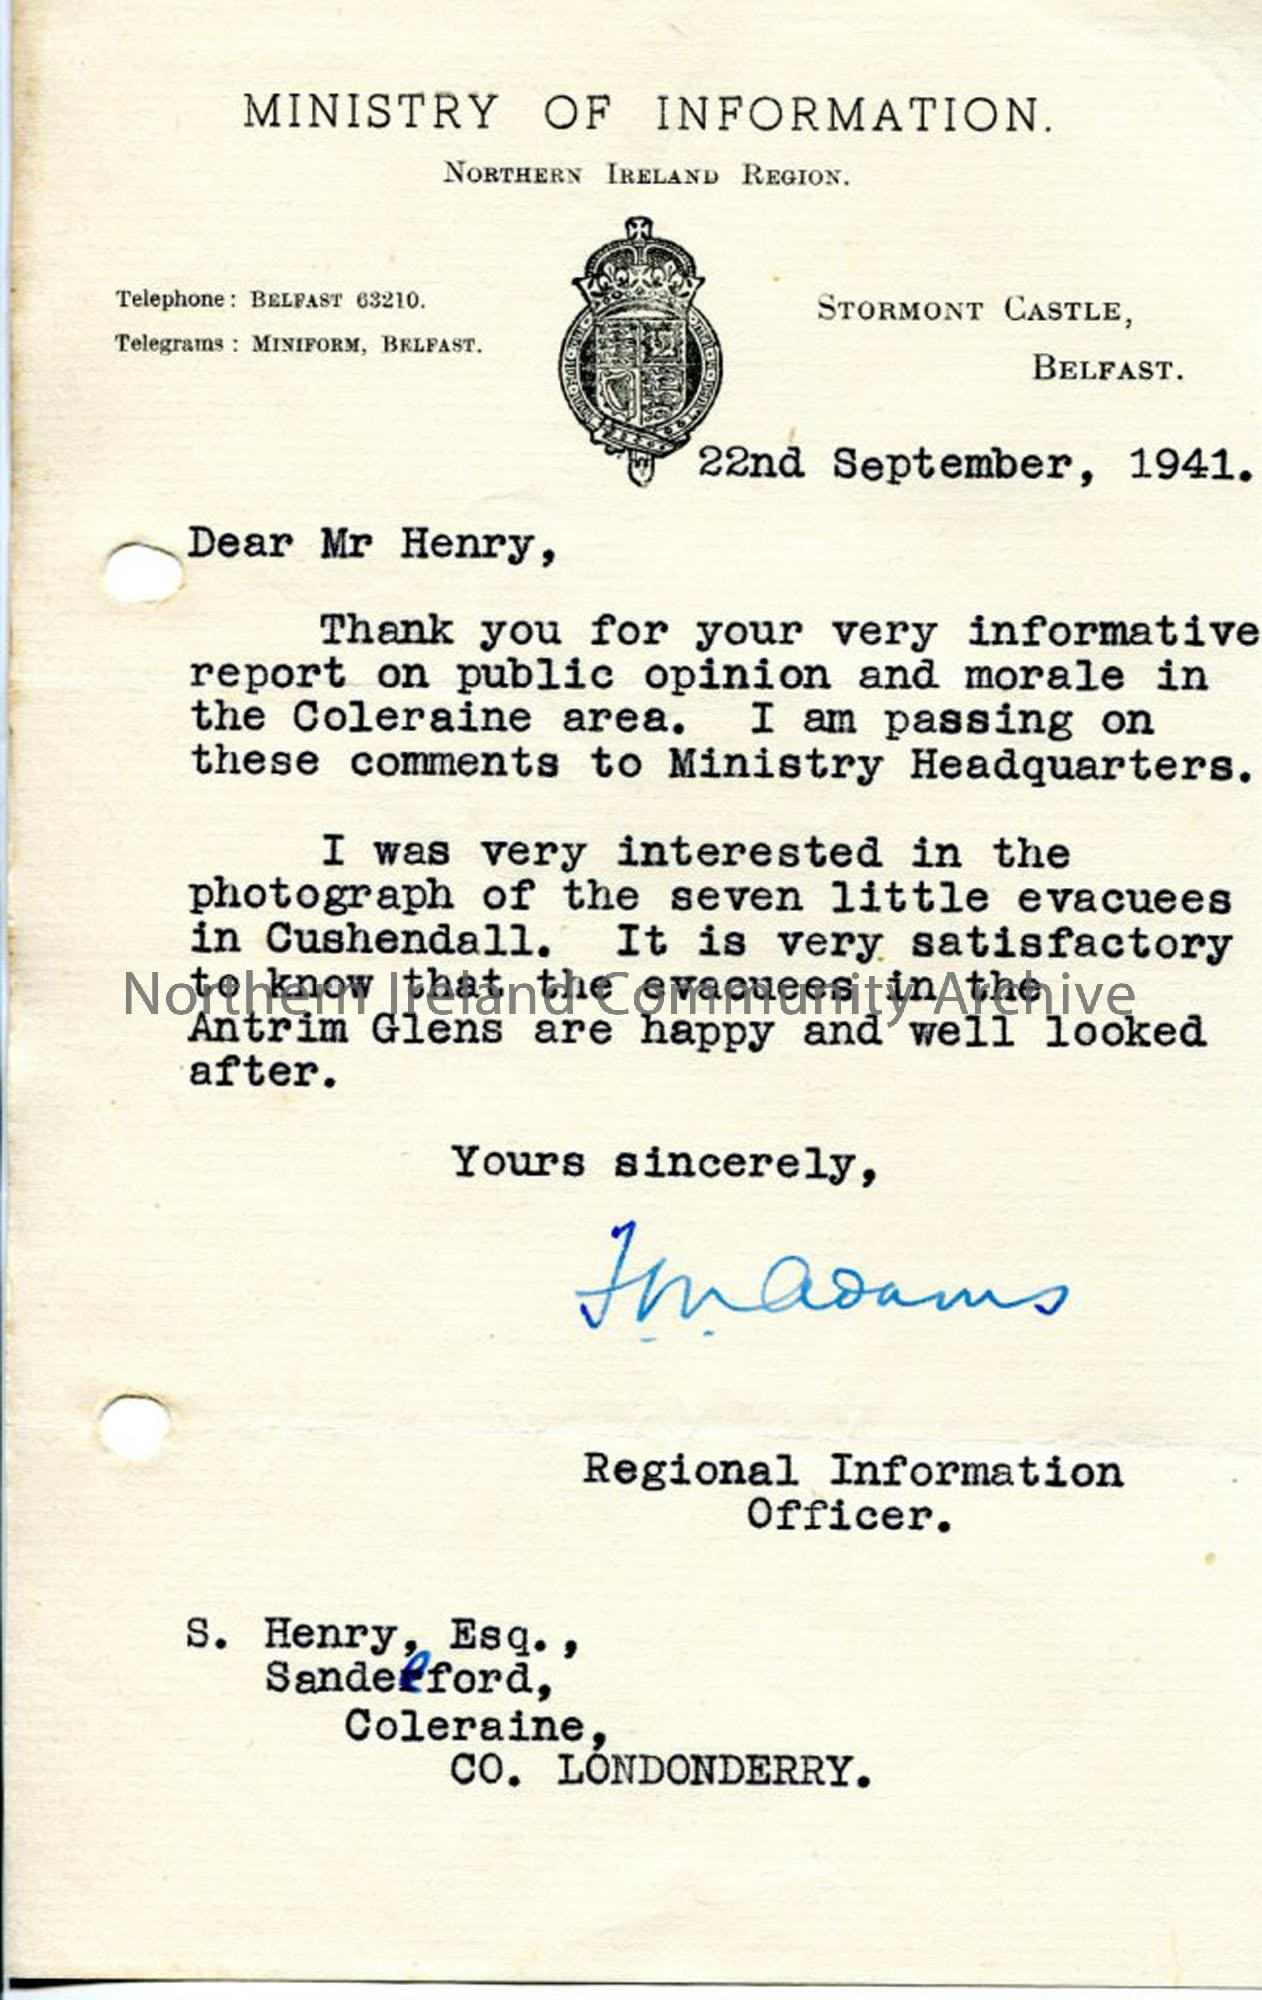 Letter from Ministry of Information to Sam Henry (5217)